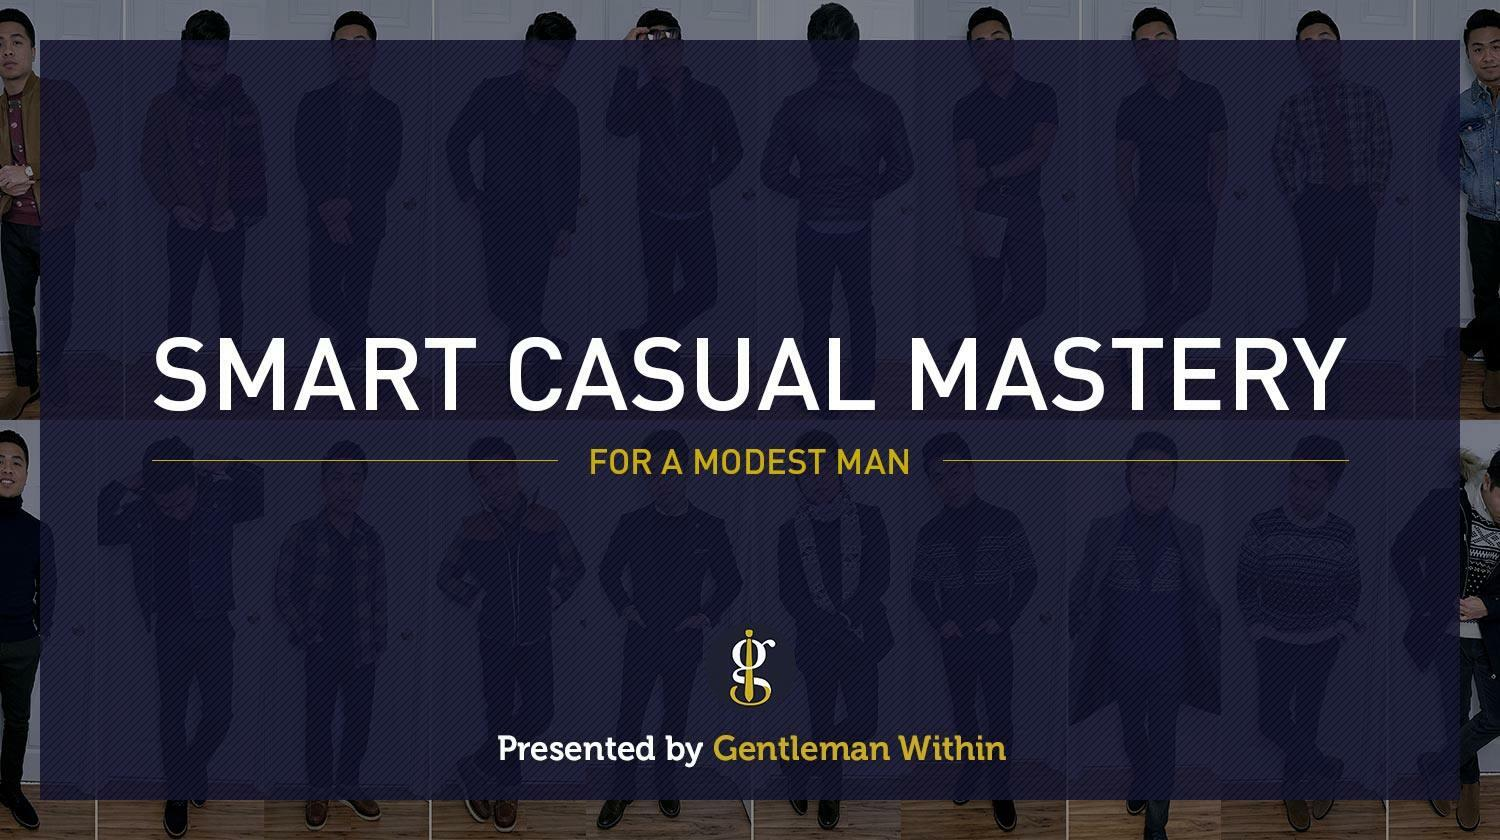 Smart casual mastery for a modest man